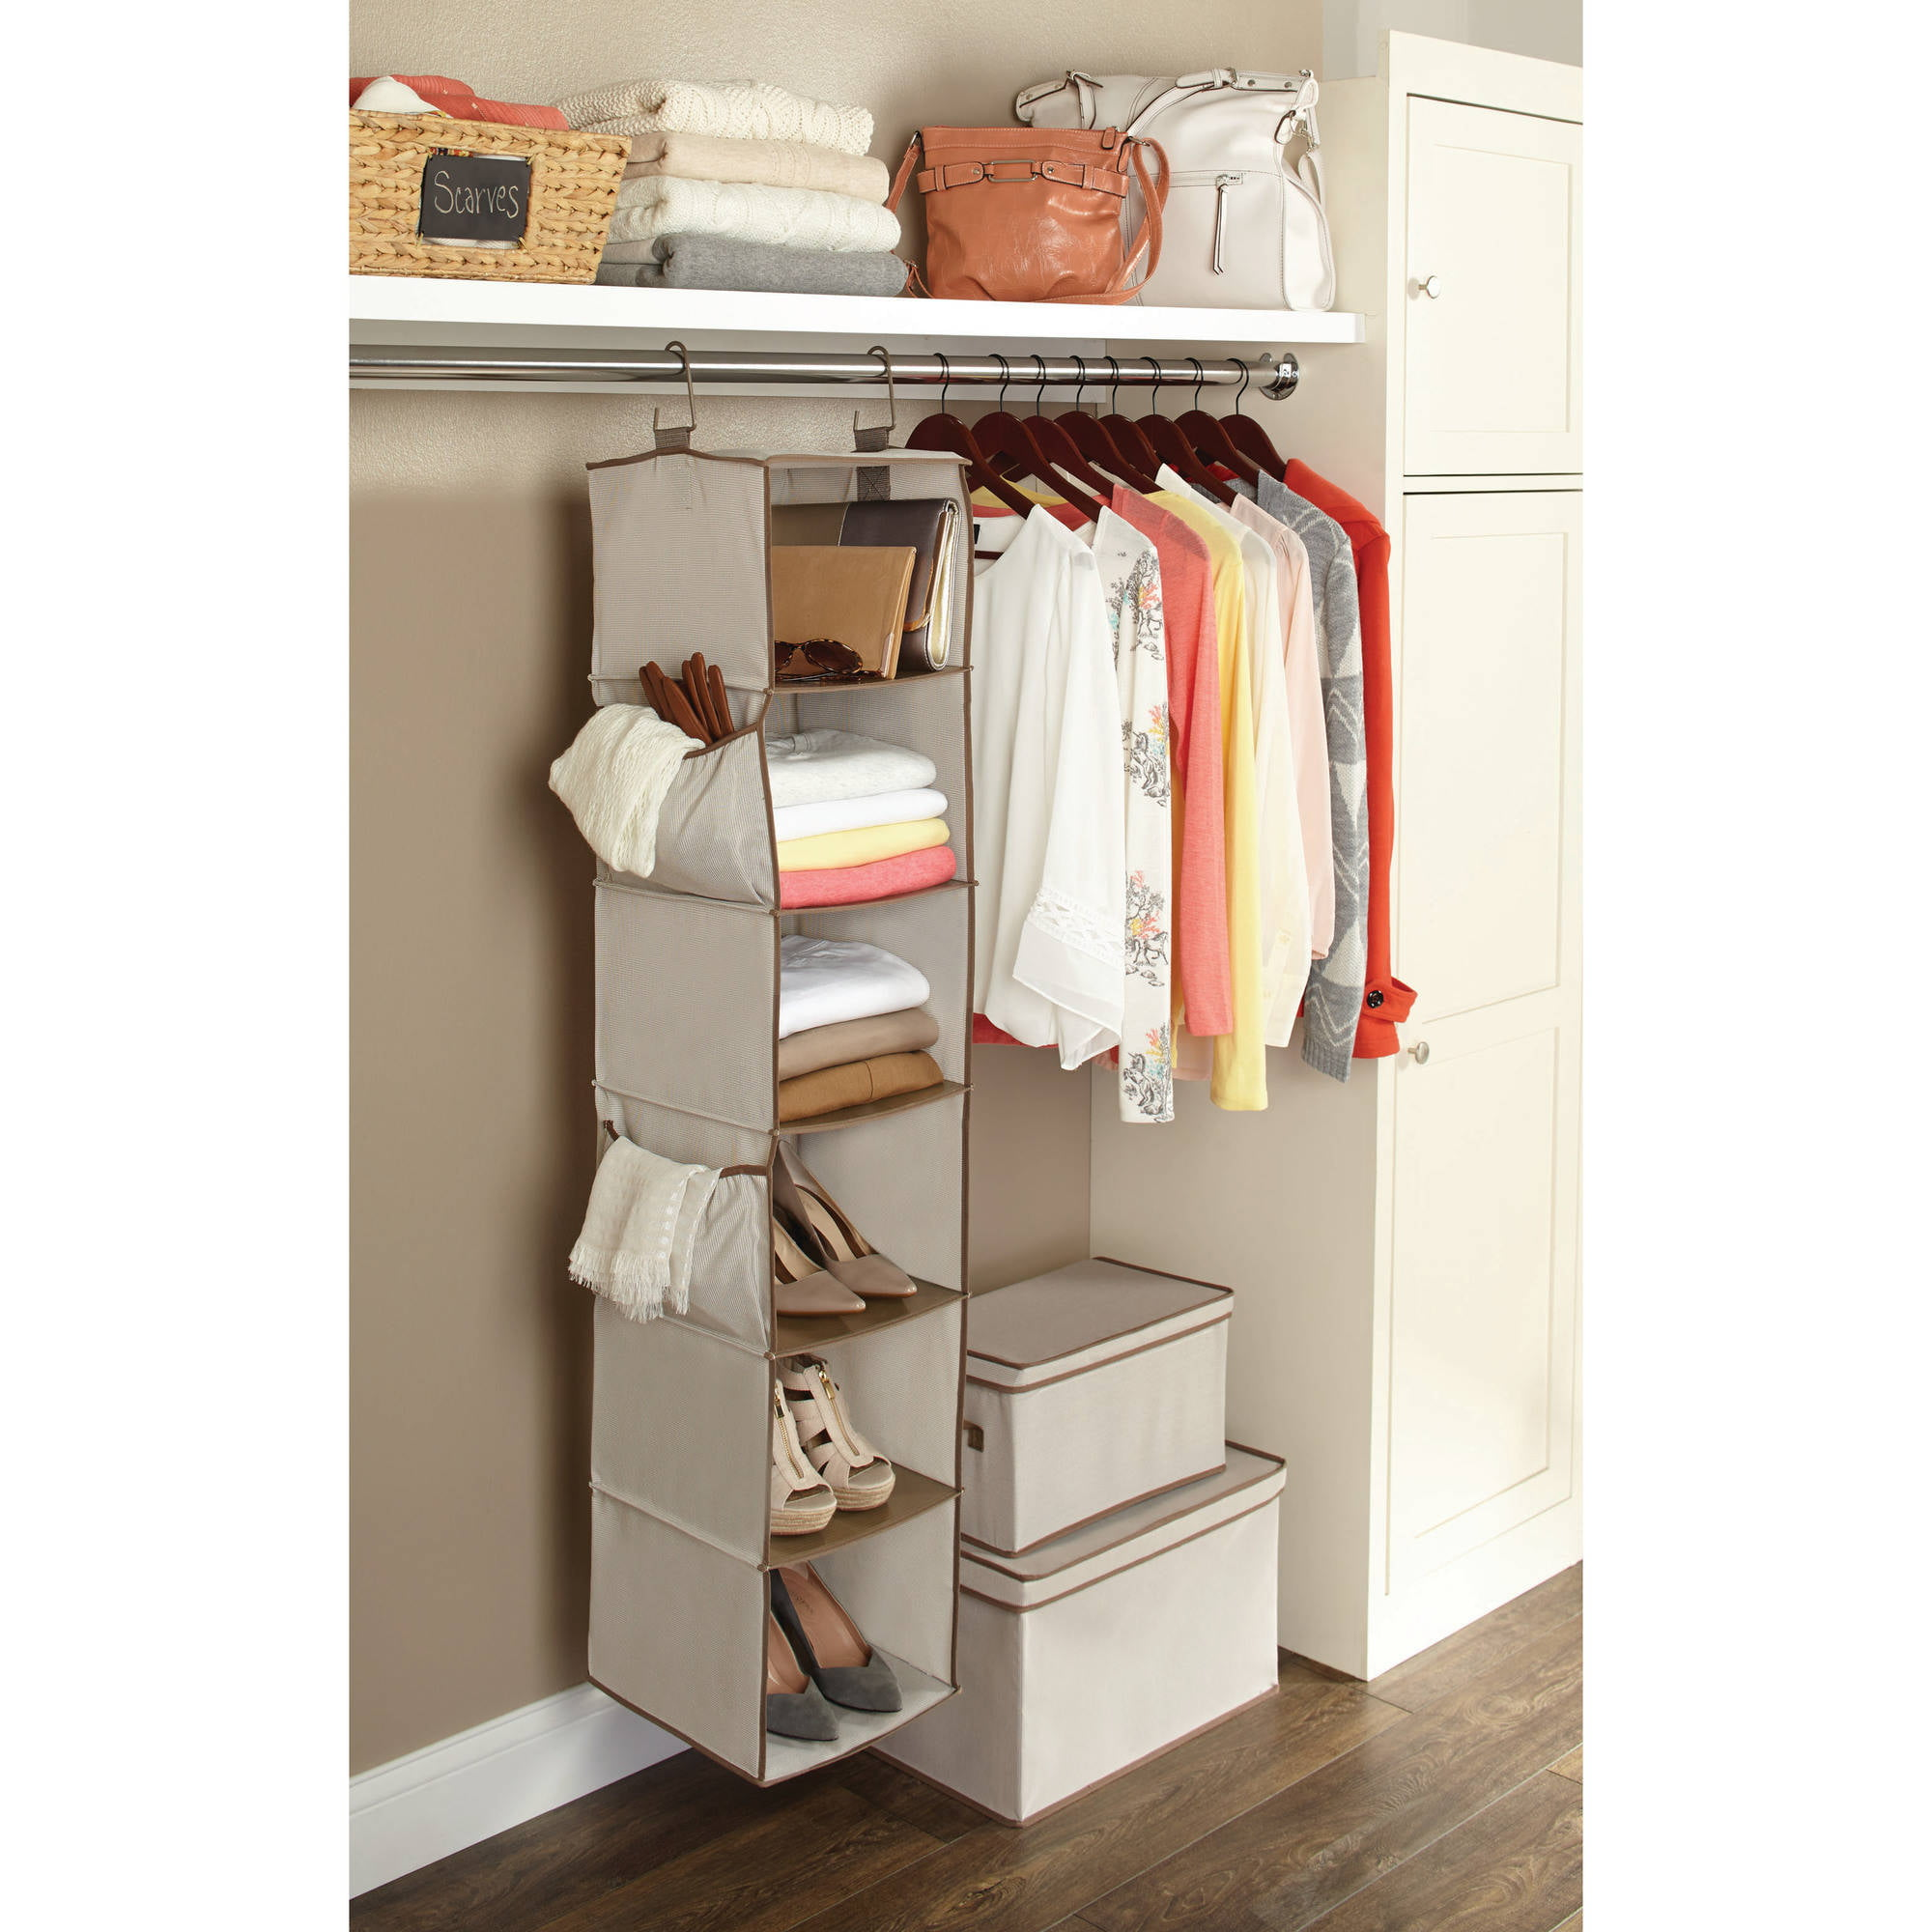 system brackets shelves wonderful shelving maid sofa hanging closetmaid surprising closet hang shelf rod white